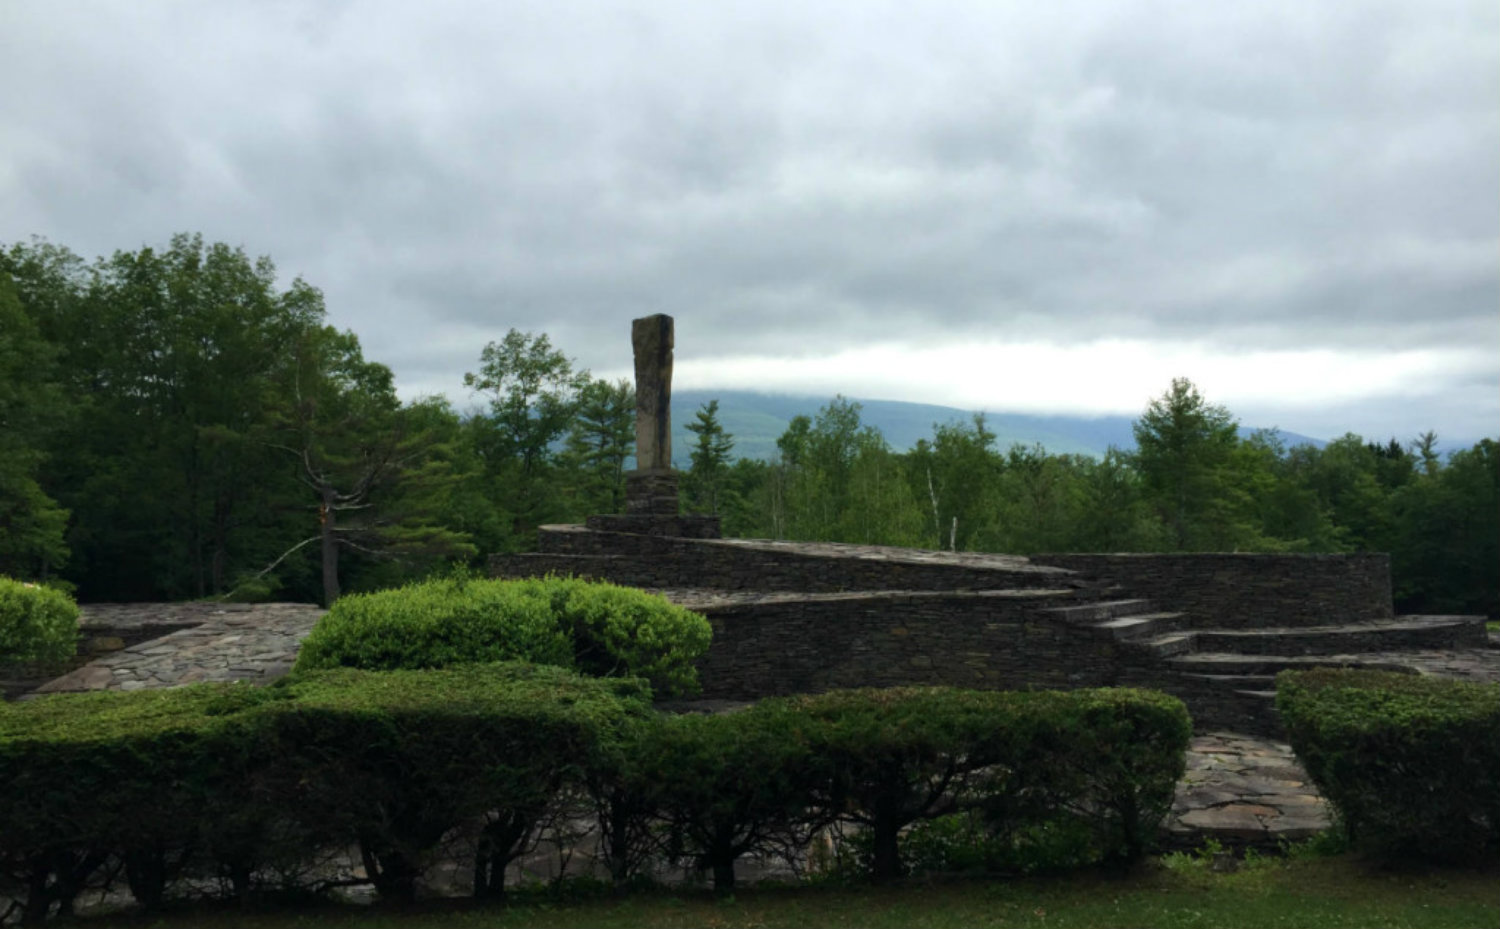 Opus-40 in Saugerties, NY - Featured Image